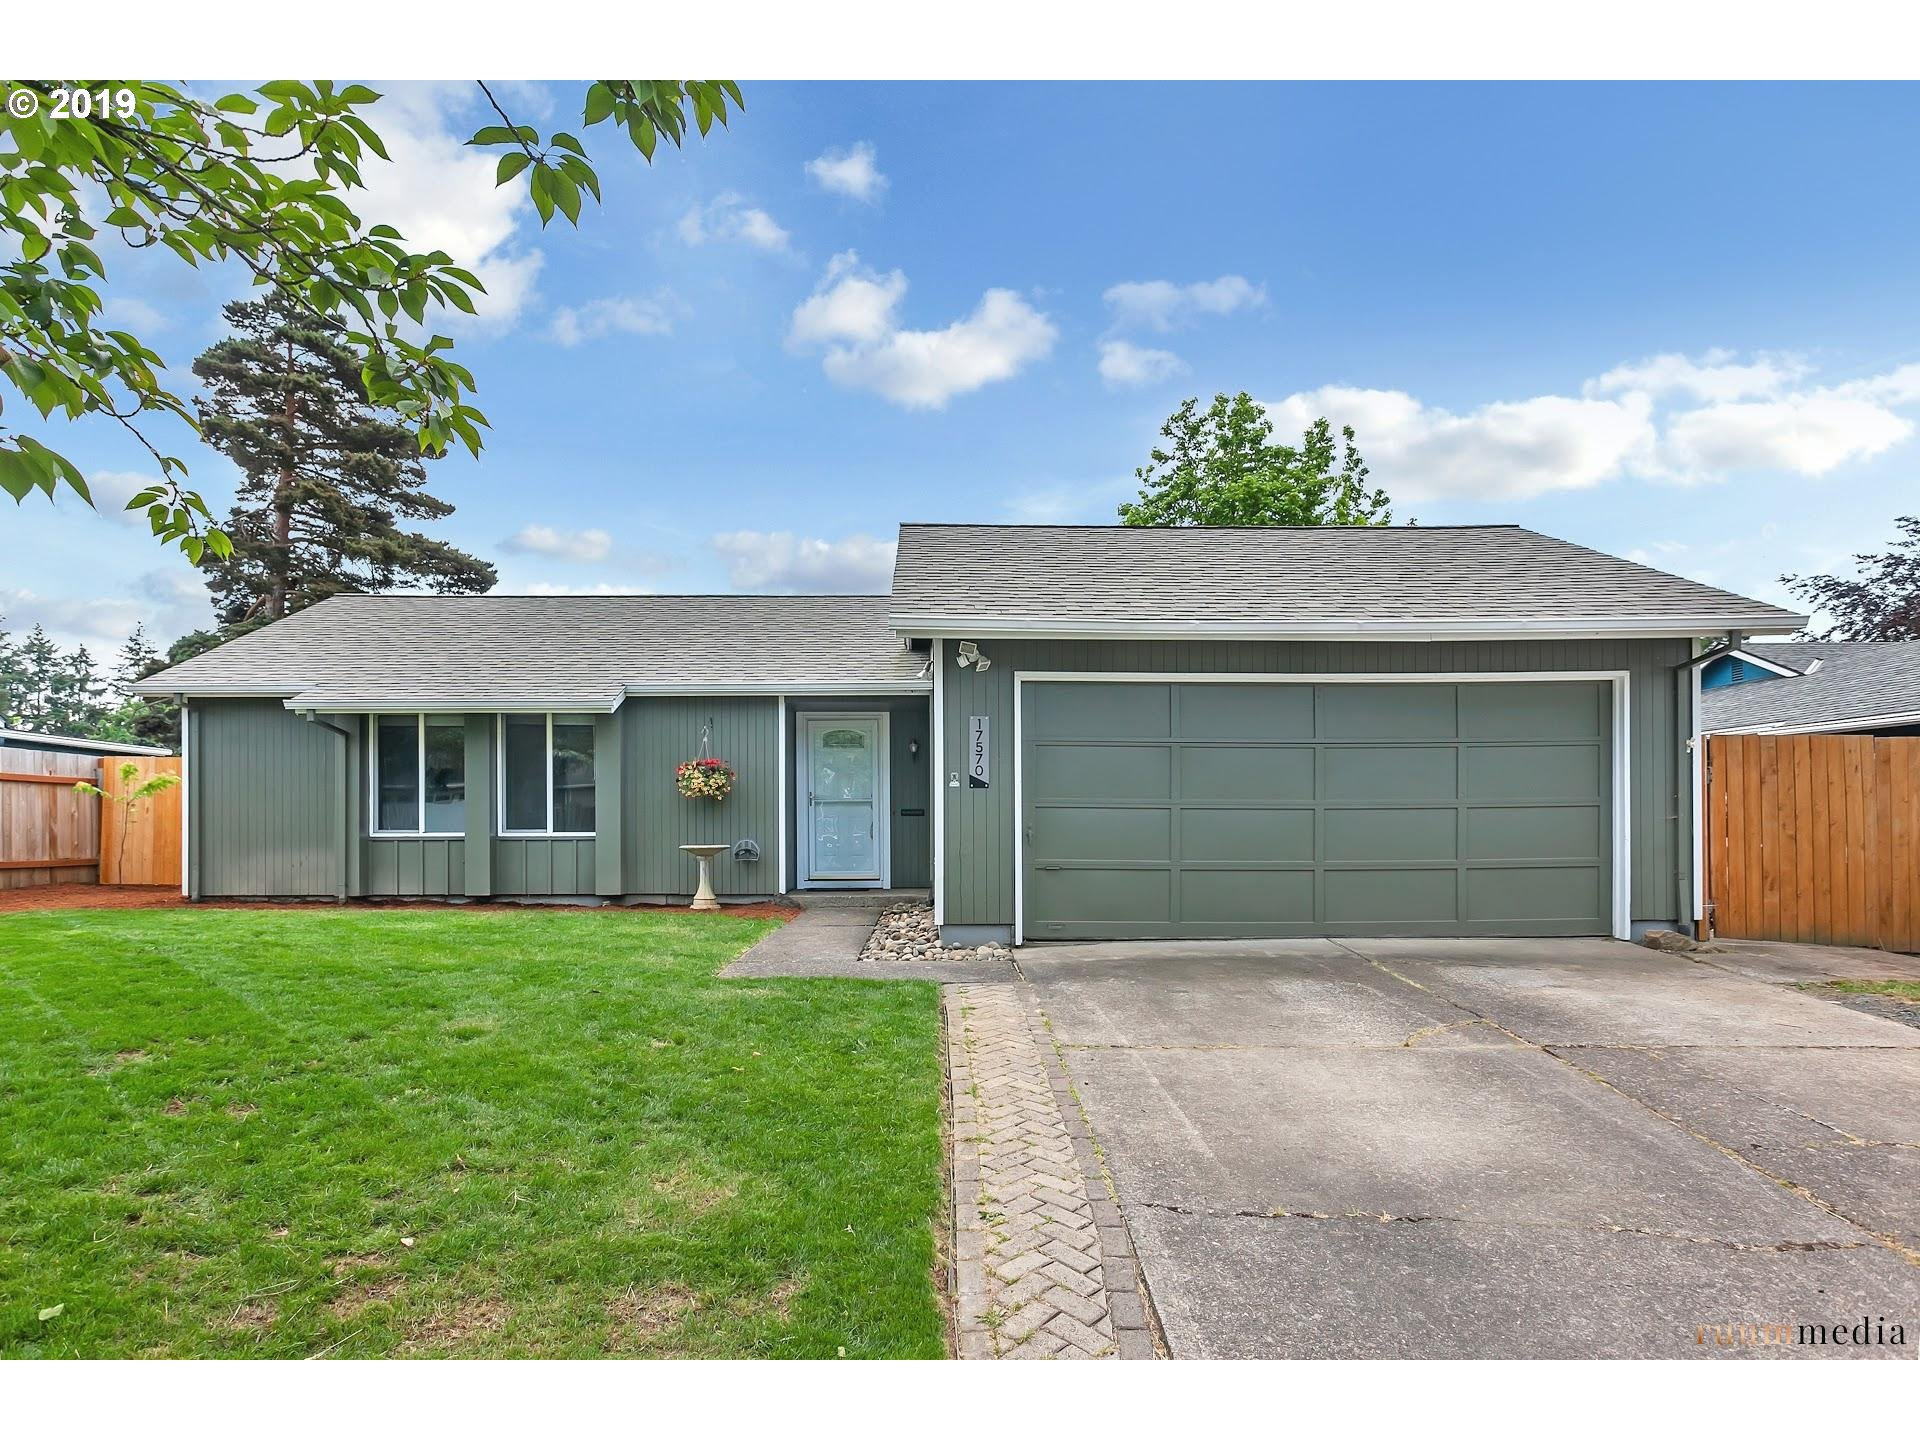 17570 NW PARK VIEW BLVD Portland Home Listings - Keller Williams Sunset Corridor Portland Real Estate